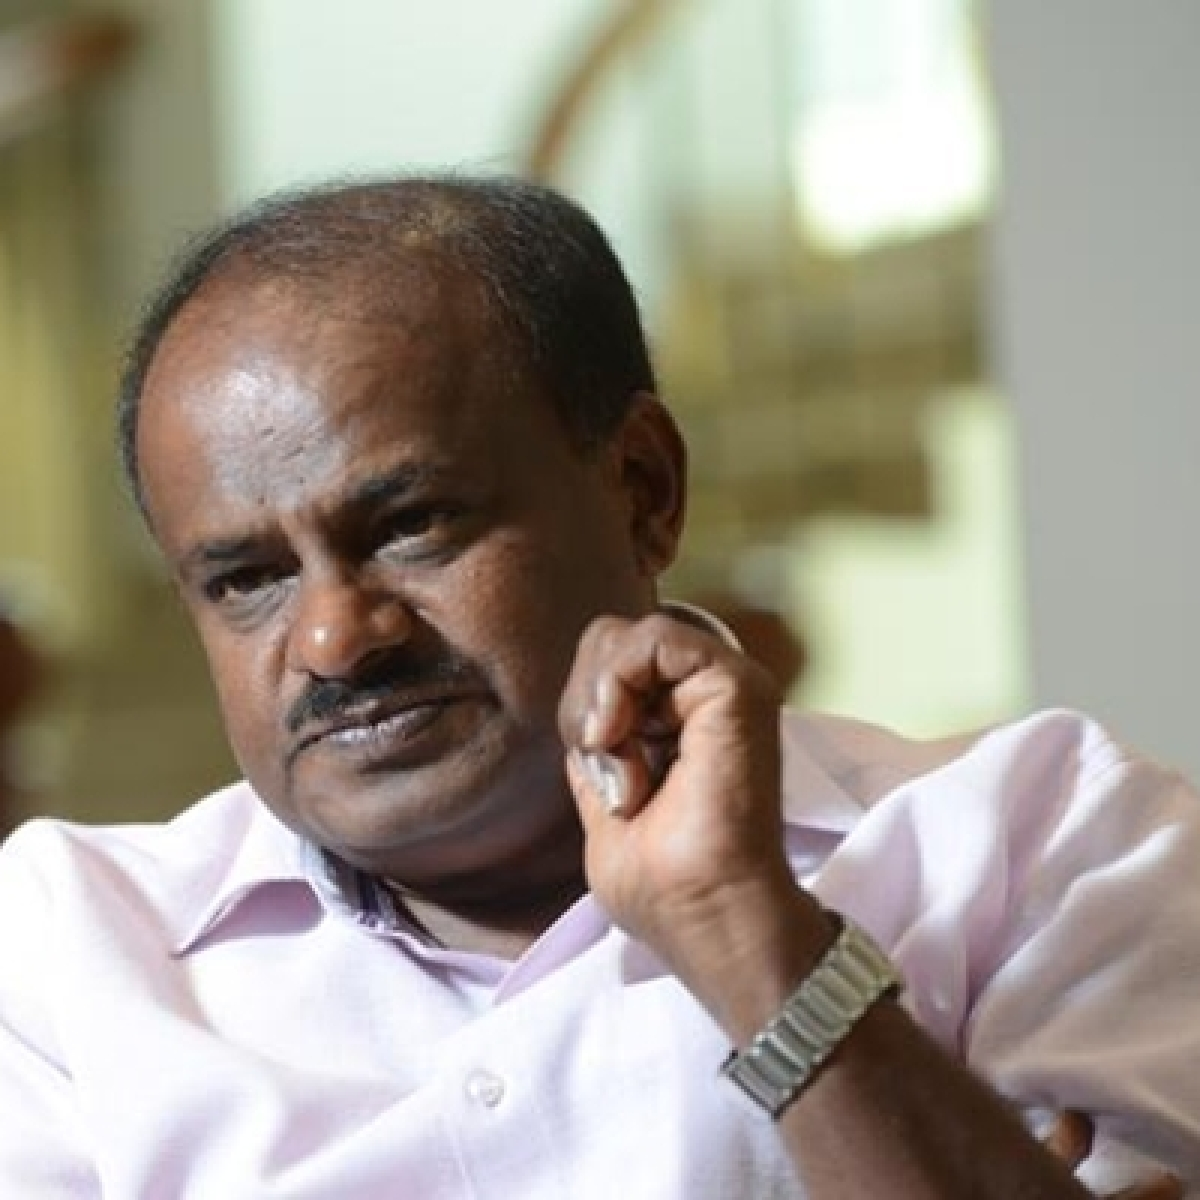 After IRS officers, ex Karnataka CM HD Kumaraswamy suggests imposing 'COVID cess' on ultra-rich to offset losses suffered due to coronavirus lockdown